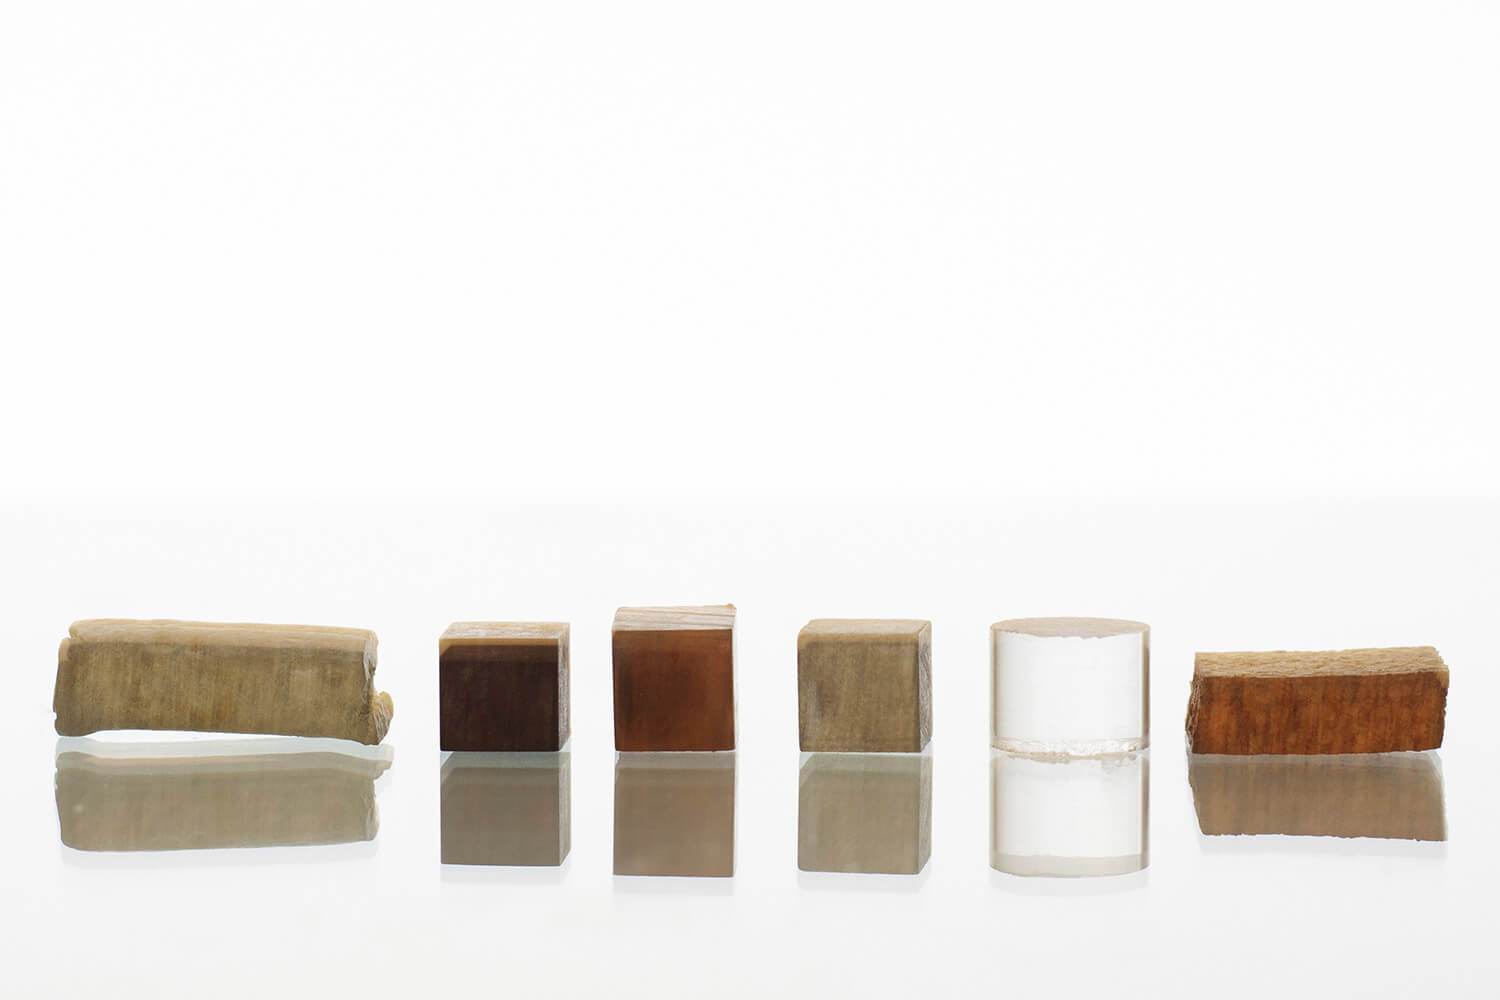 A comparison of the densities of different cubed minerals.